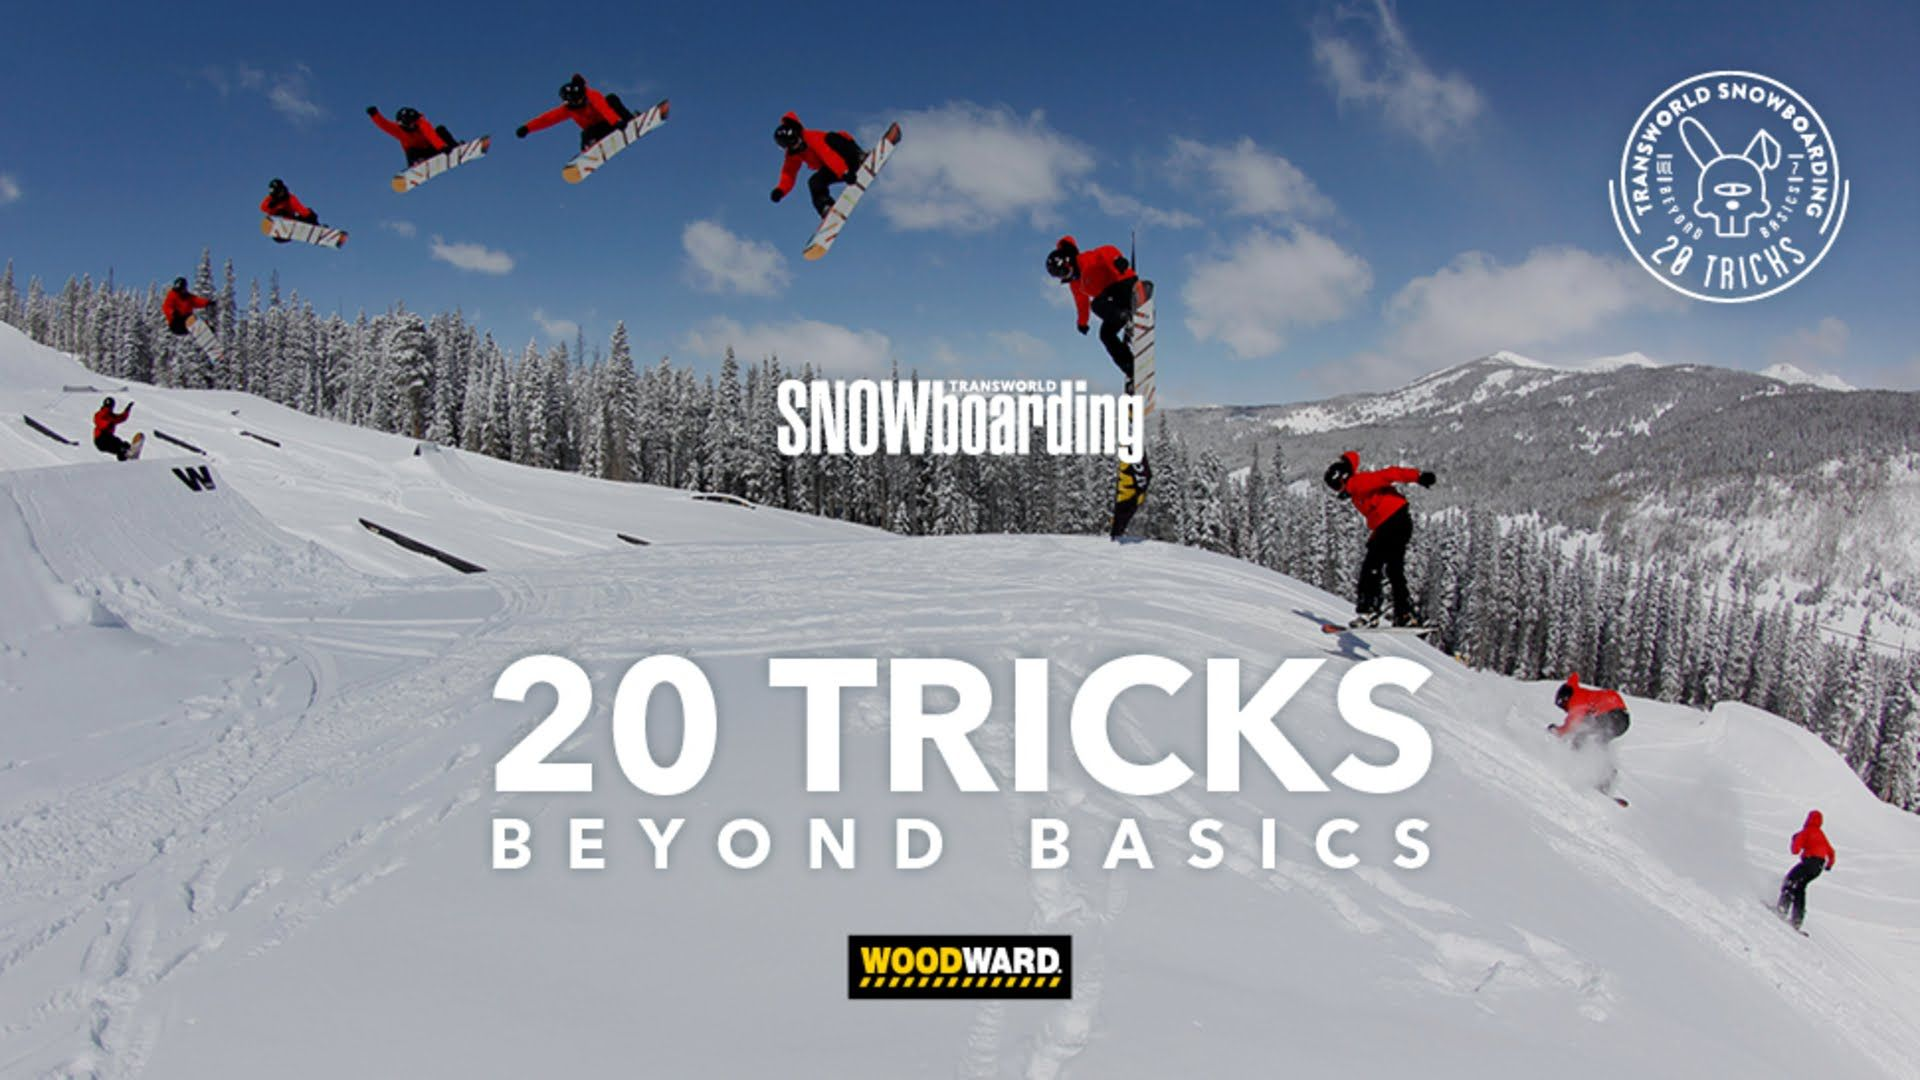 How To Snowboard Cab 360 S With Benji Farrow Transworld Snowboarding Vulza Forged By Artists Transworld Snowboarding Snowboarding Snowboard